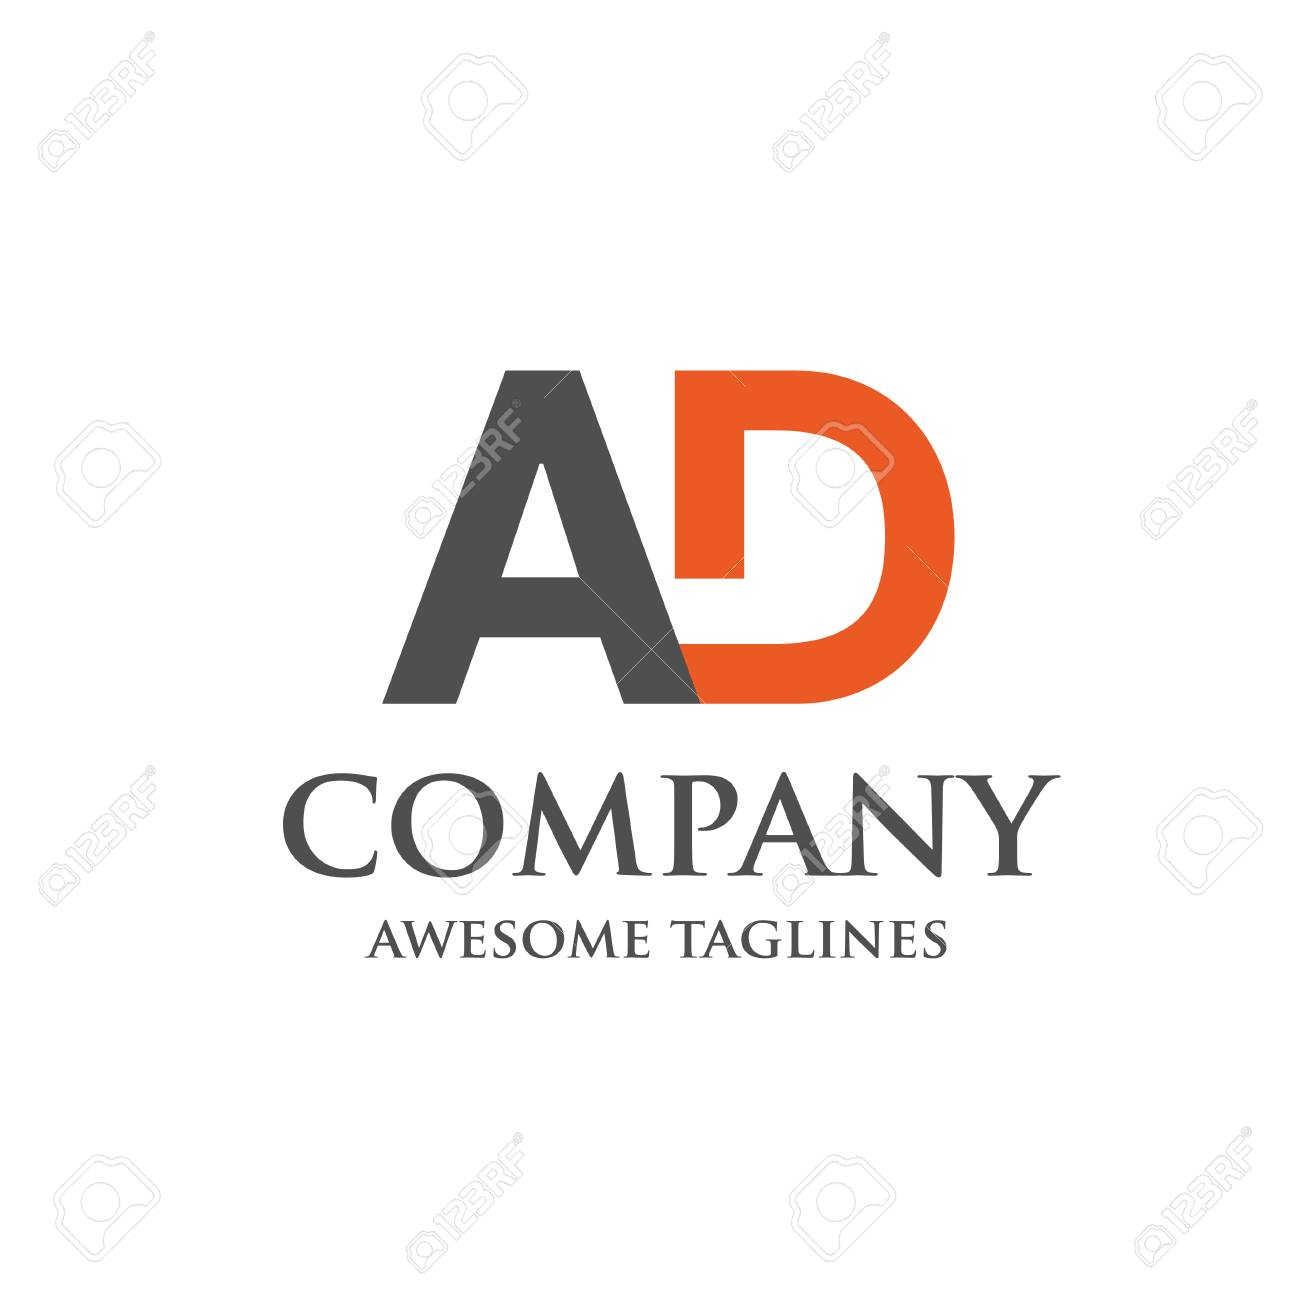 Creative letter ab logo abstract business logo design template creative letter ab logo abstract business logo design template flashek Images